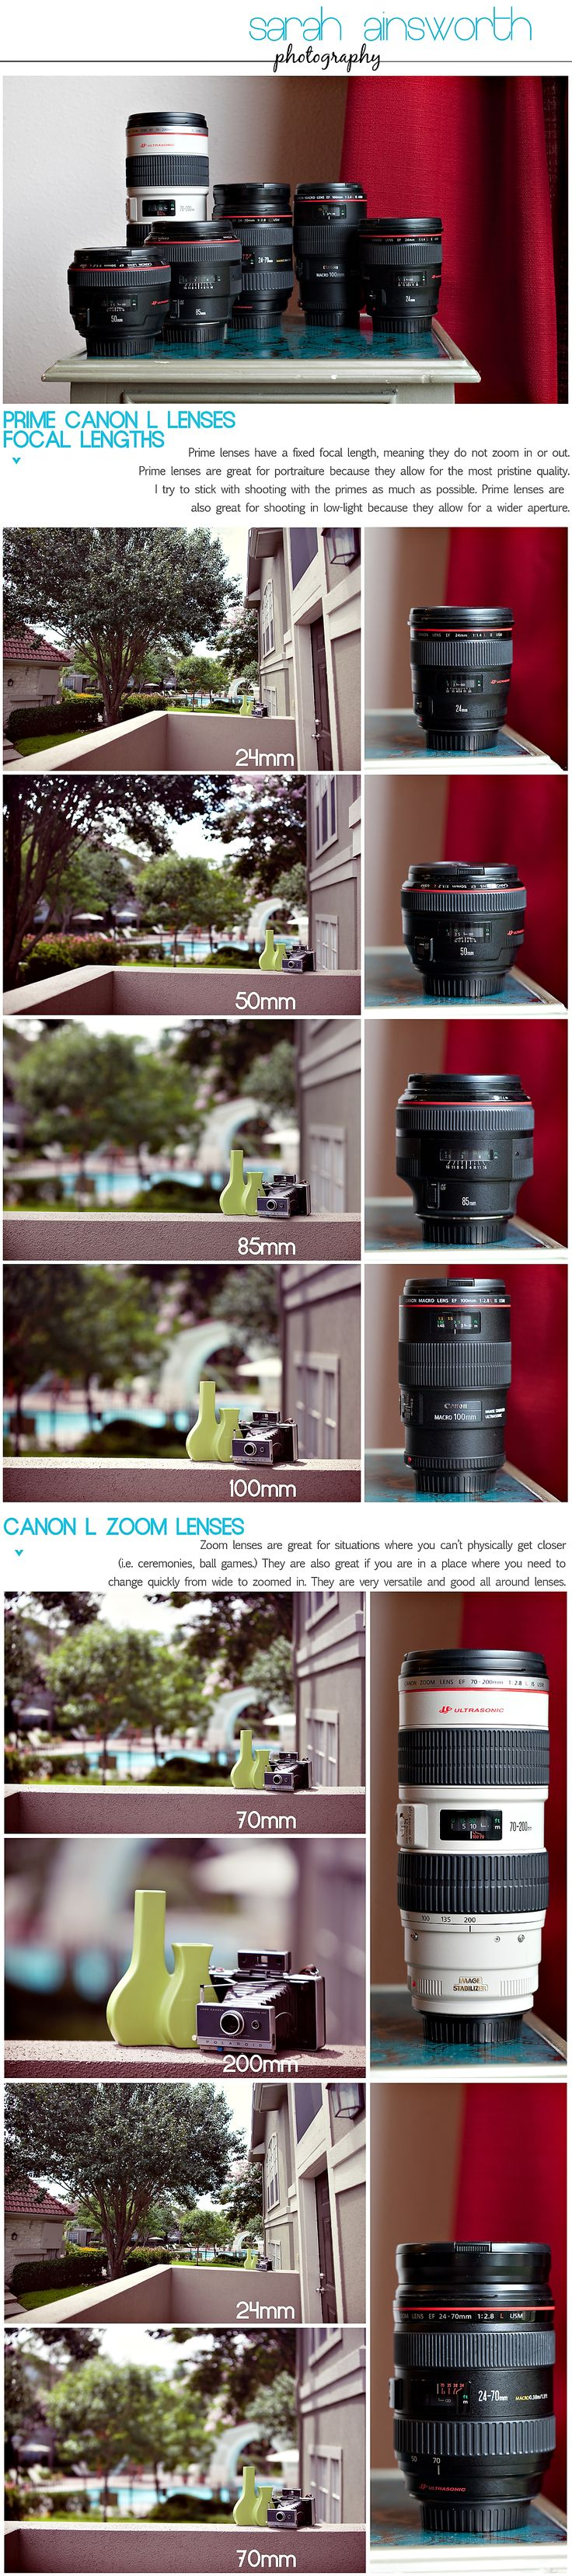 Great article about prime lenses.Canon Cameras Lens, Canon Camera Lens, Focal Length, Cameras Bags, Photography Lens, Canon Photography, Photography Bags, Canon Lens, Photography Ideas